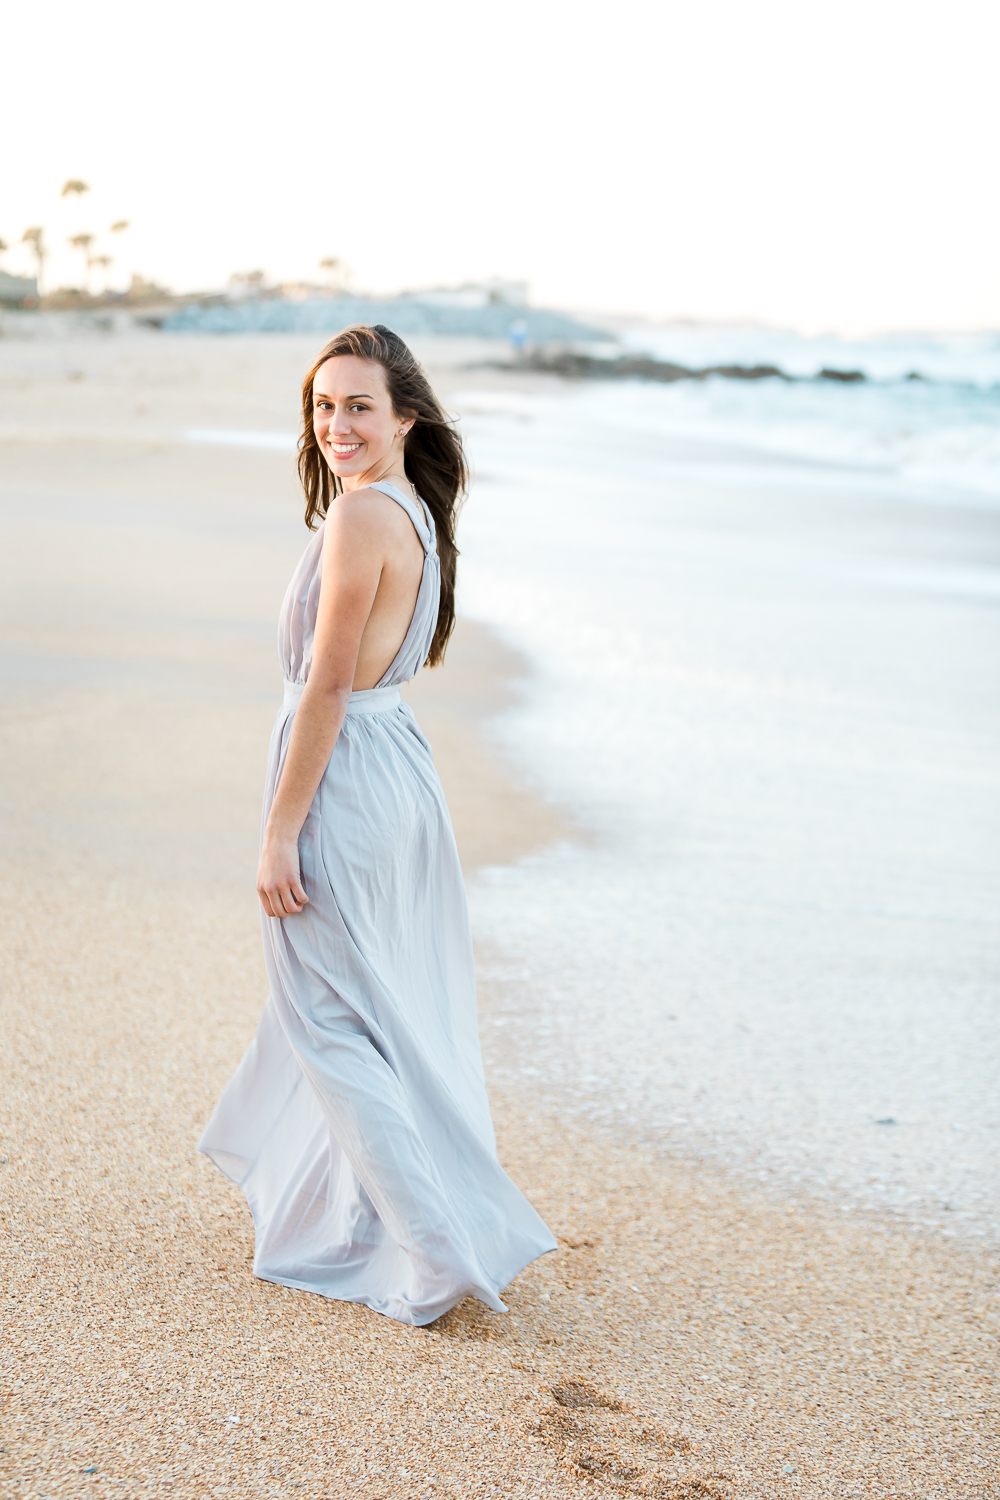 Hight school senior pictures at the beach